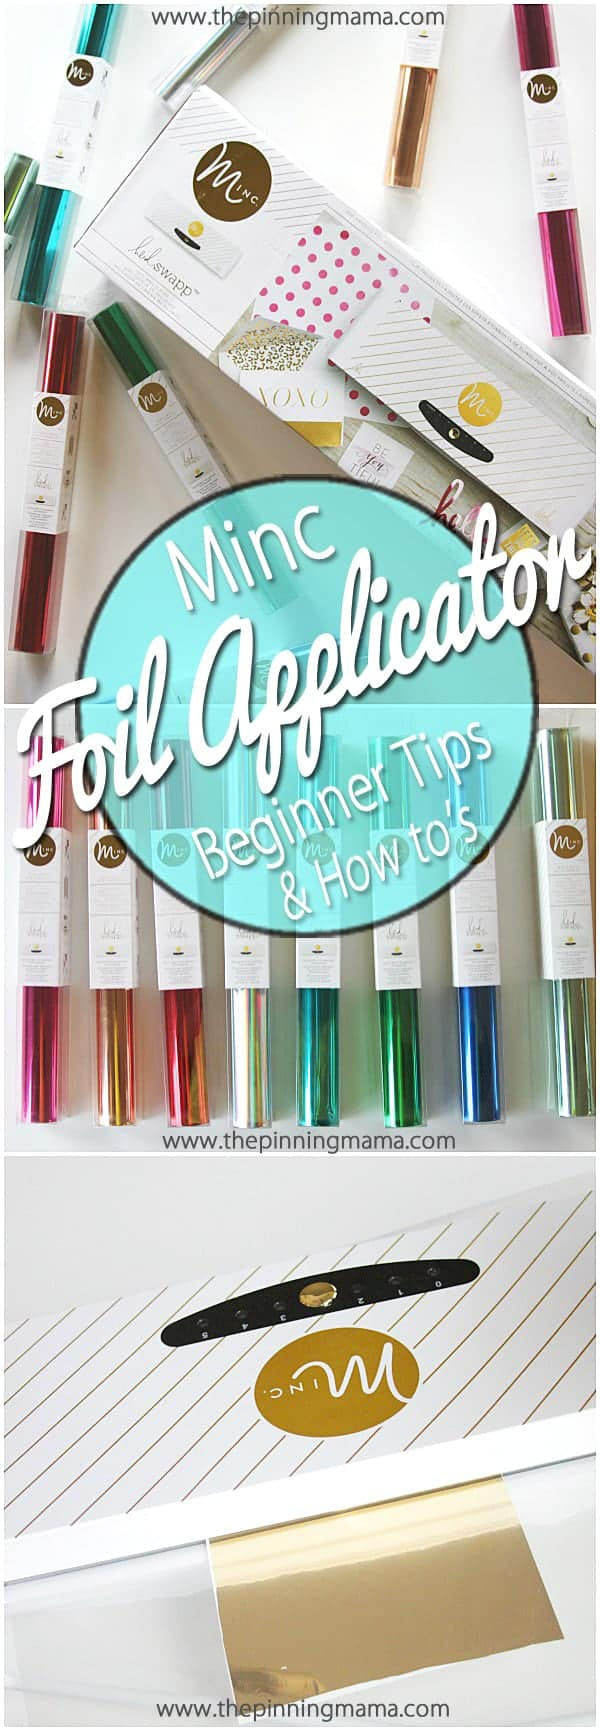 How to use the Heidi Swapp Minc Foil Applicator- Beginner tips and tricks to get the best results and avoid common mistakes!